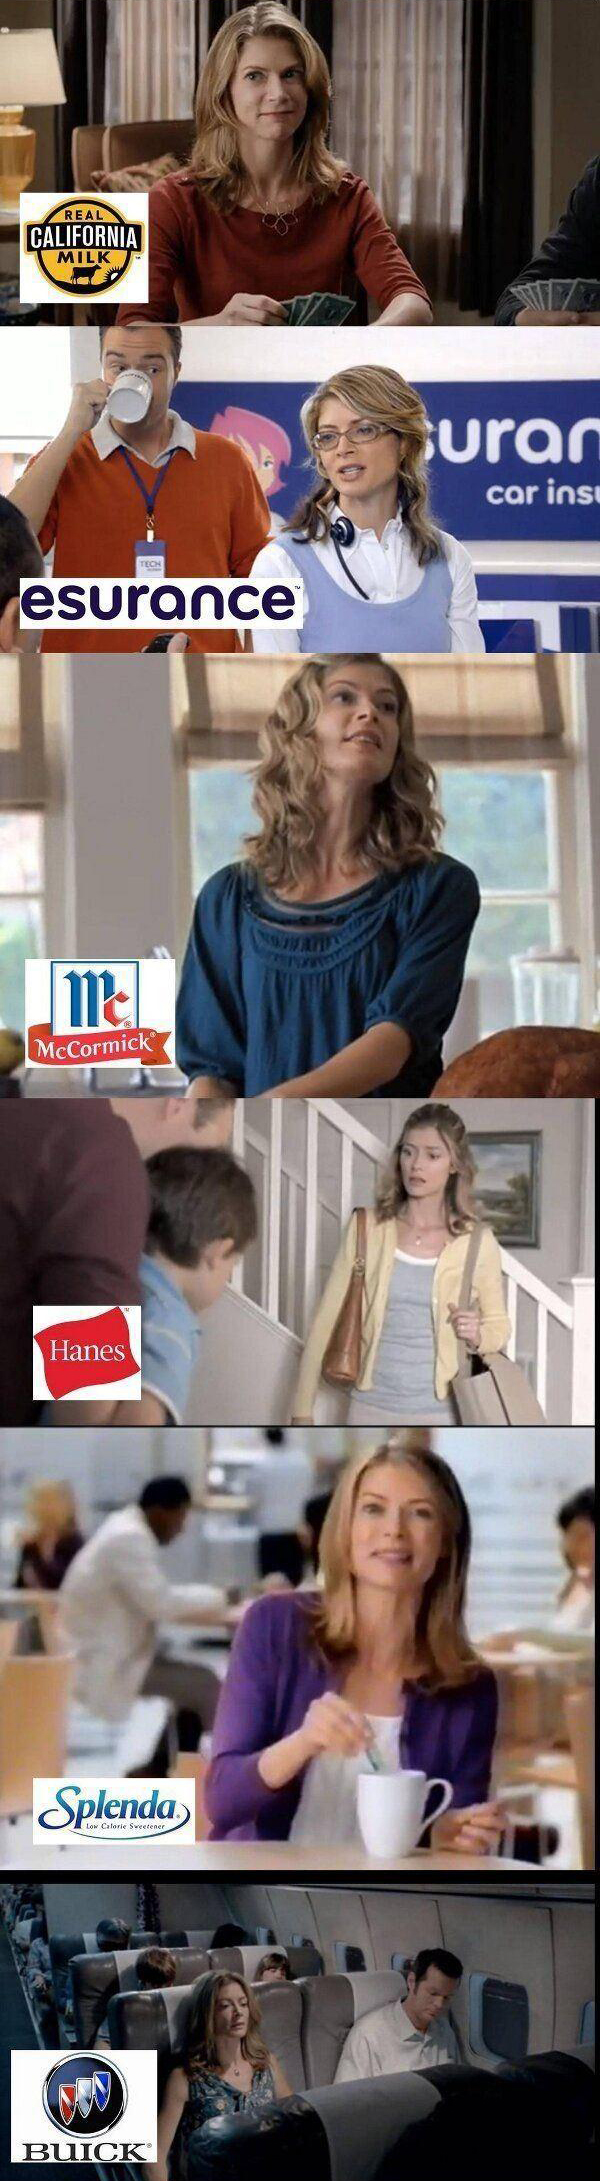 lady is in lots of commercials